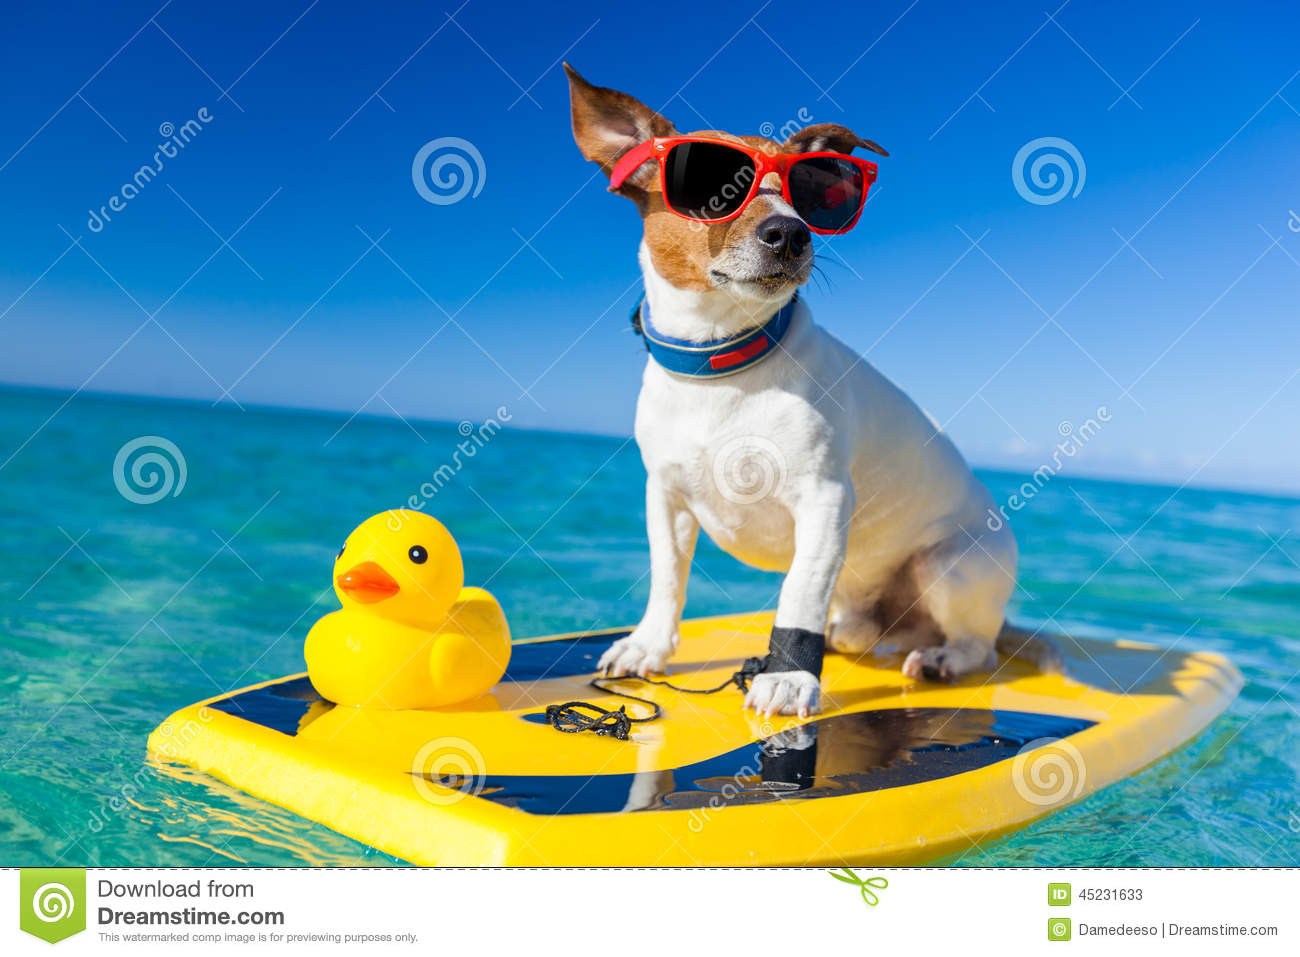 Dog surfing on a surfboard wearing sunglasses with a yellow plastic ...